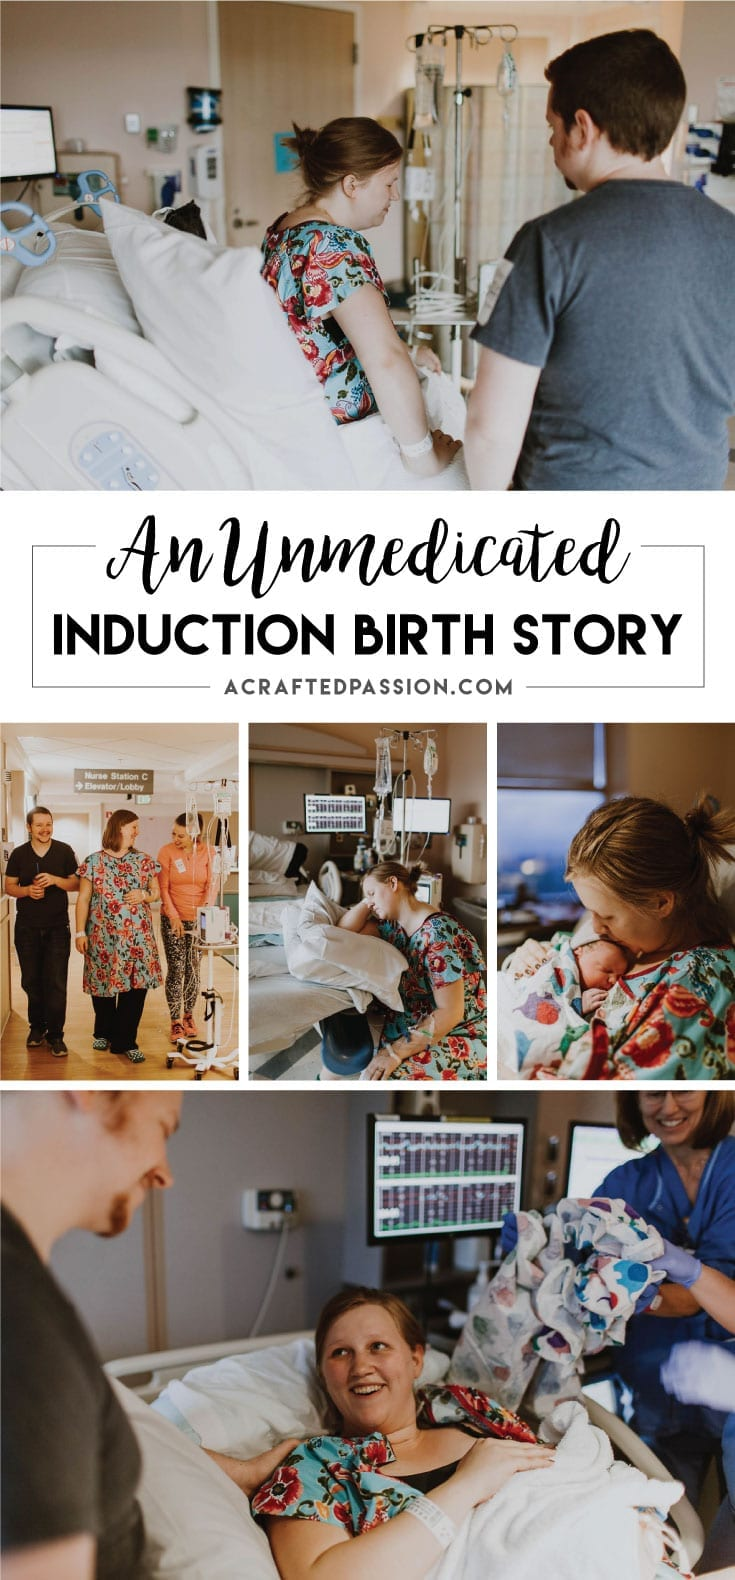 Maggie's Birth Story: It is possible to have a positive unmedicated induction hospital birth. Read all aboutit here!